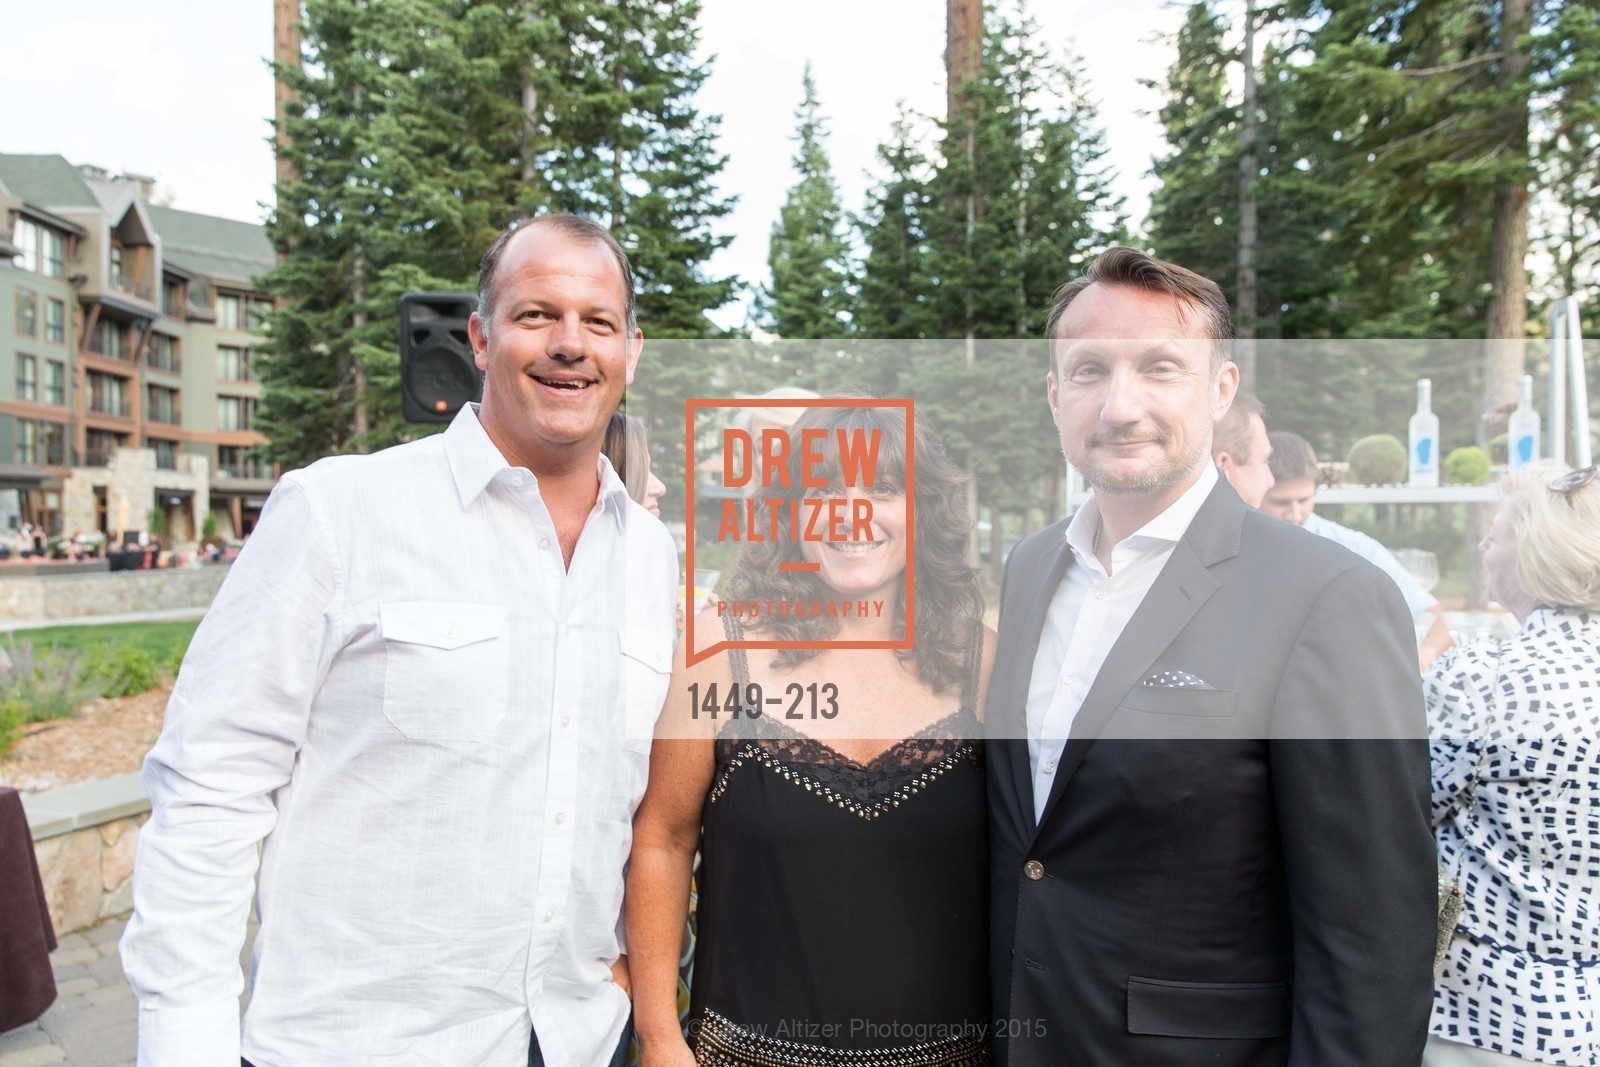 David Brandenburger, Kristen Keane, Giles Marsden, League to Save Lake Tahoe Sponsor Cocktail Party, Ritz-Carlton, Lake Tahoe, July 31st, 2015,Drew Altizer, Drew Altizer Photography, full-service agency, private events, San Francisco photographer, photographer california